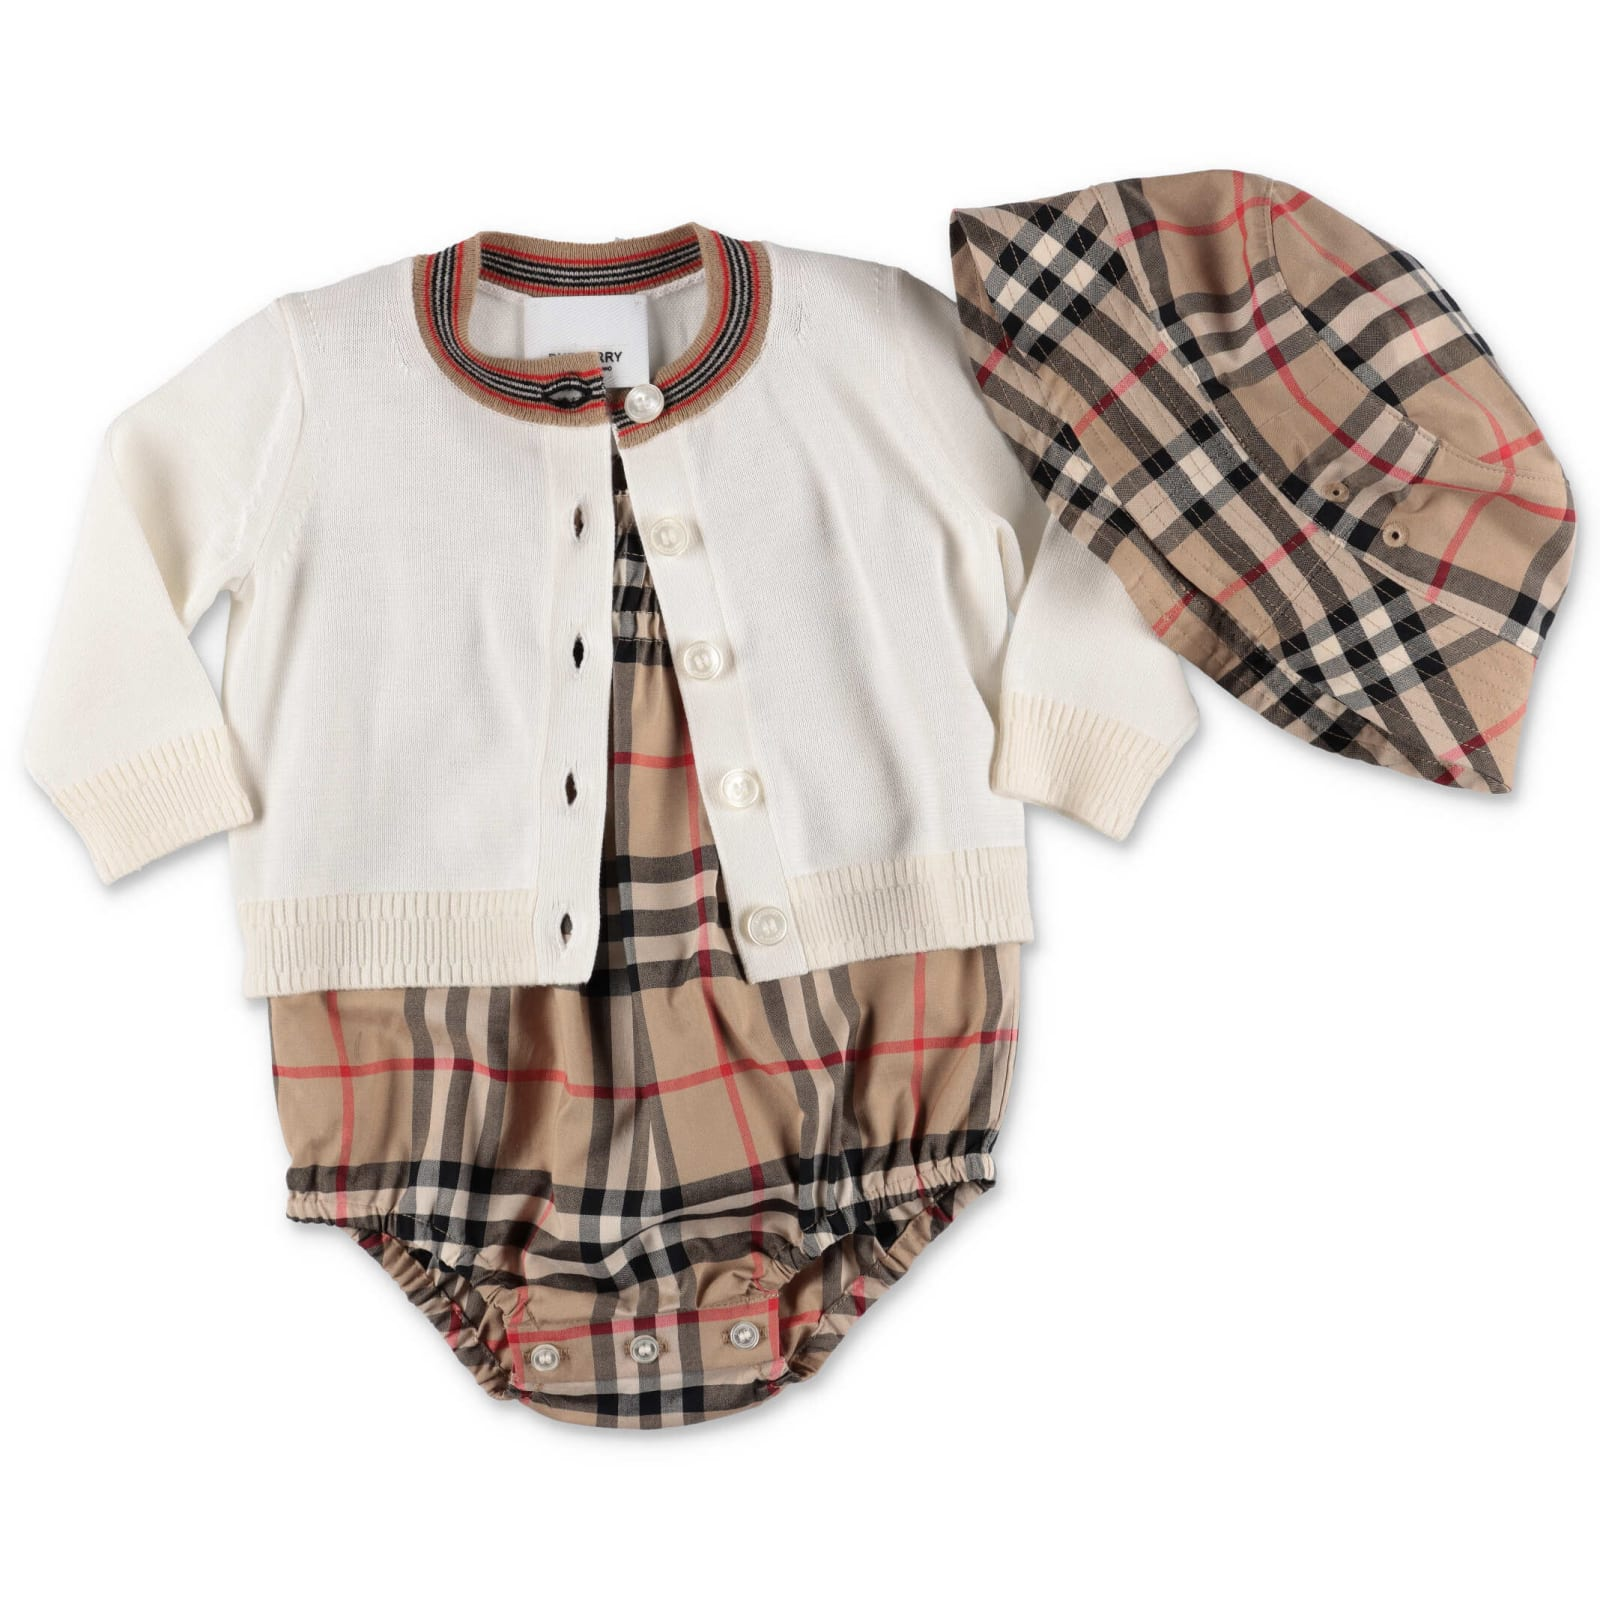 Burberry Babies' Jumpsuit In Check